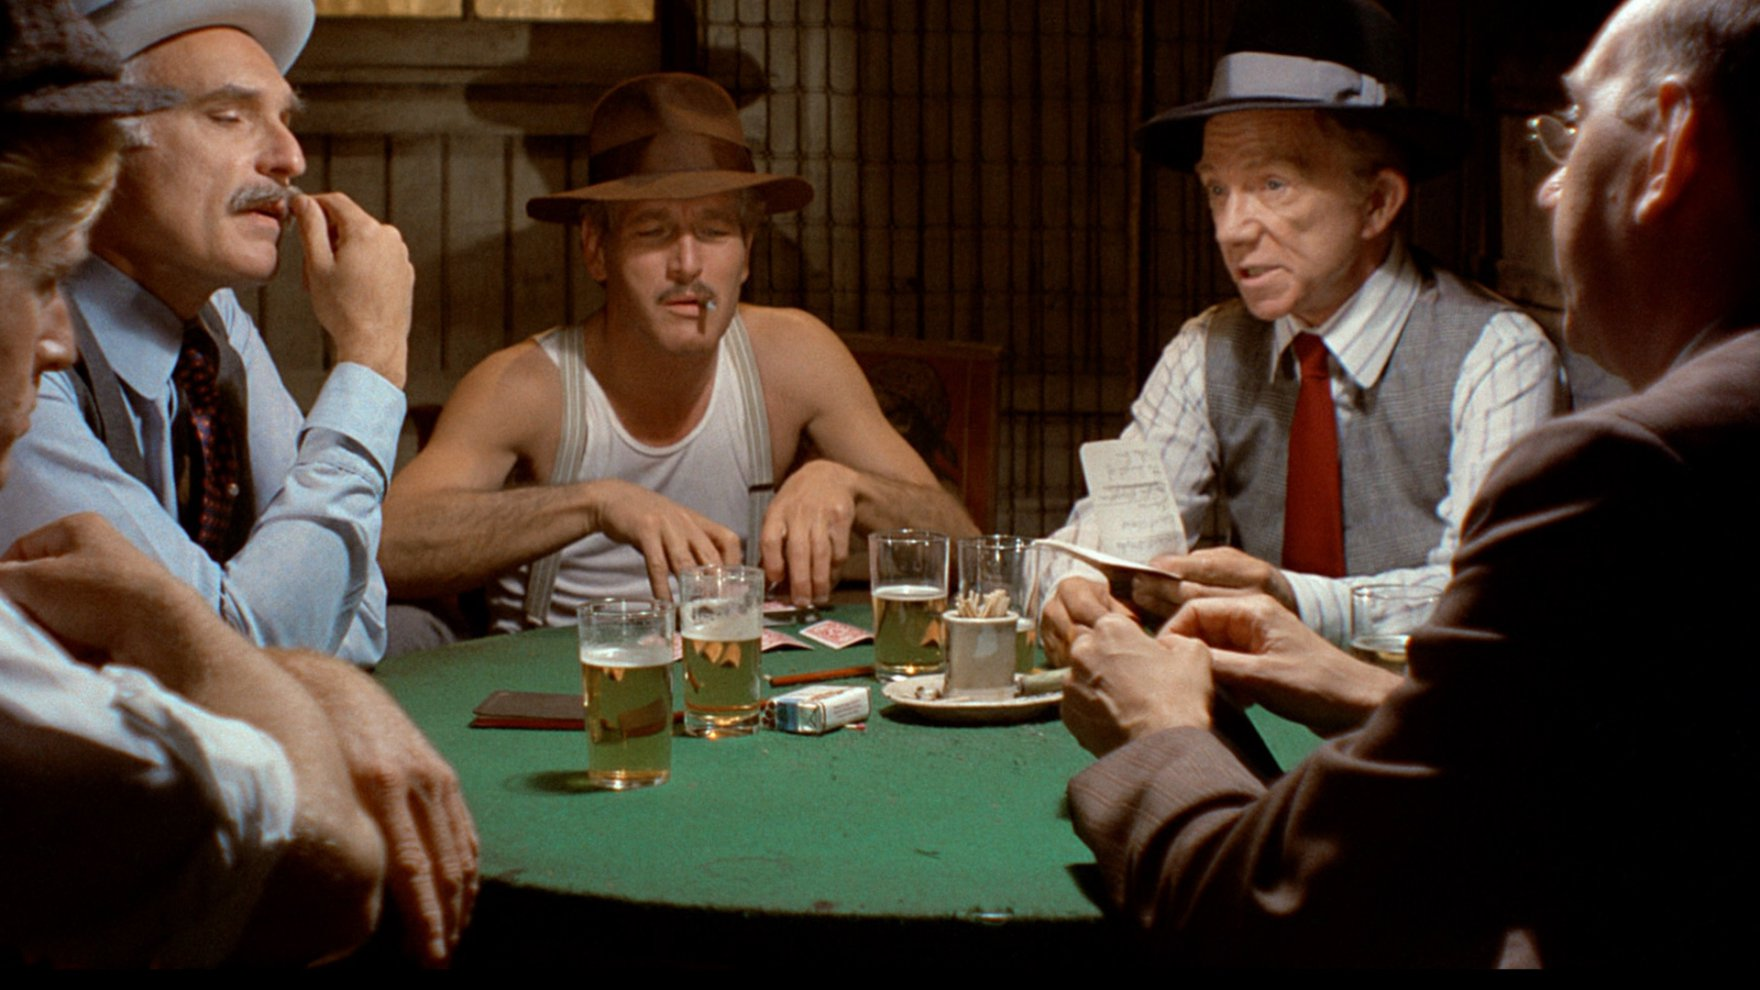 Kid poker full movie learn to play poker cash game